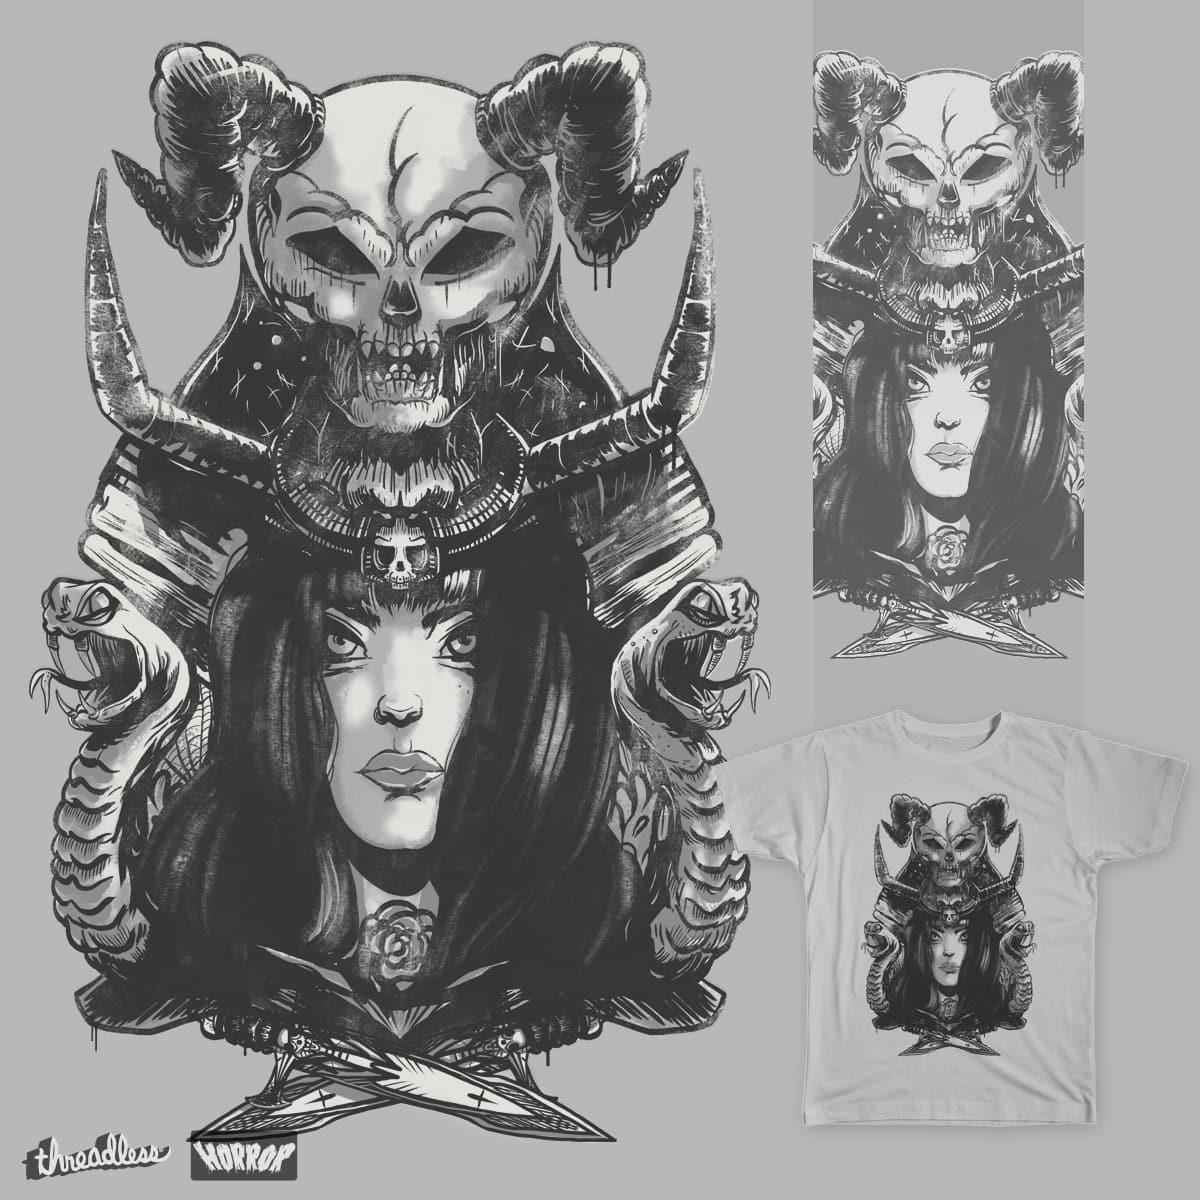 Princess of Darkness by Gums. on Threadless